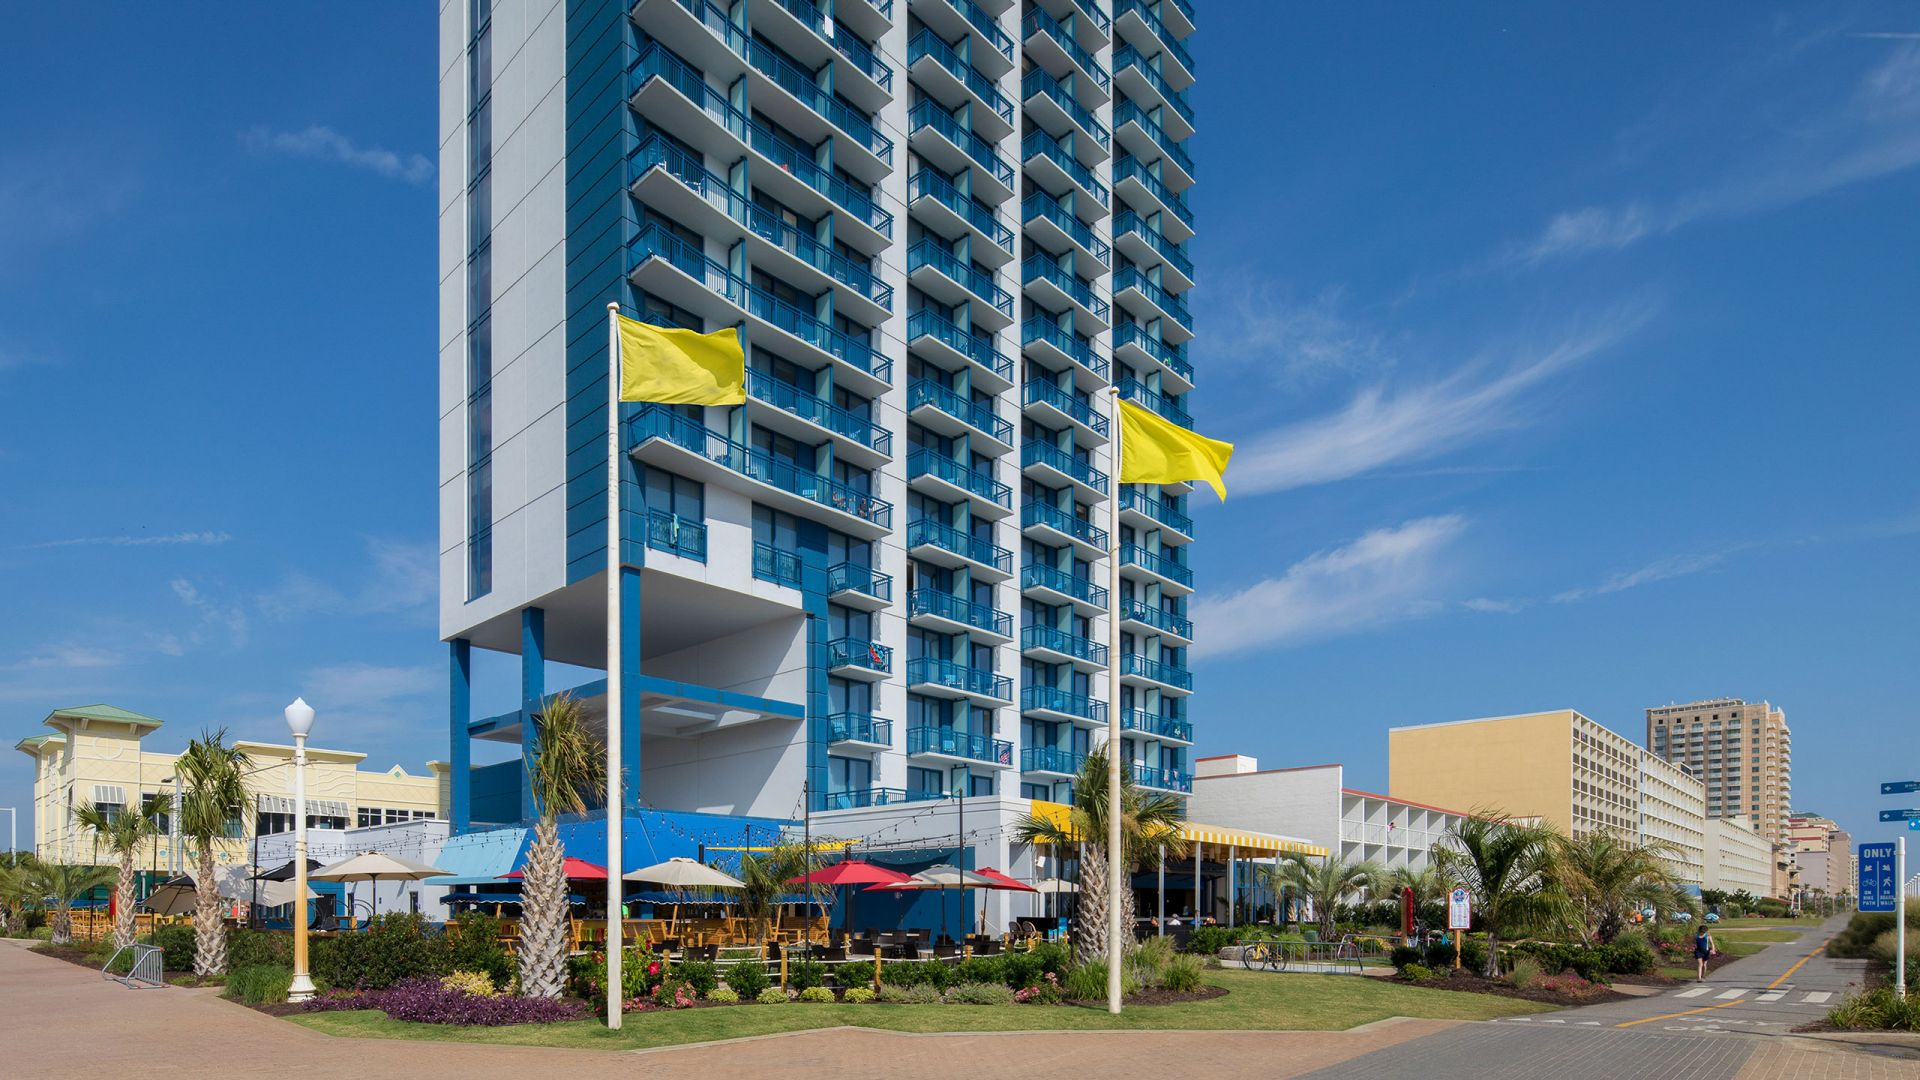 Hyatt House Virginia Beach / Oceanfront Exterior